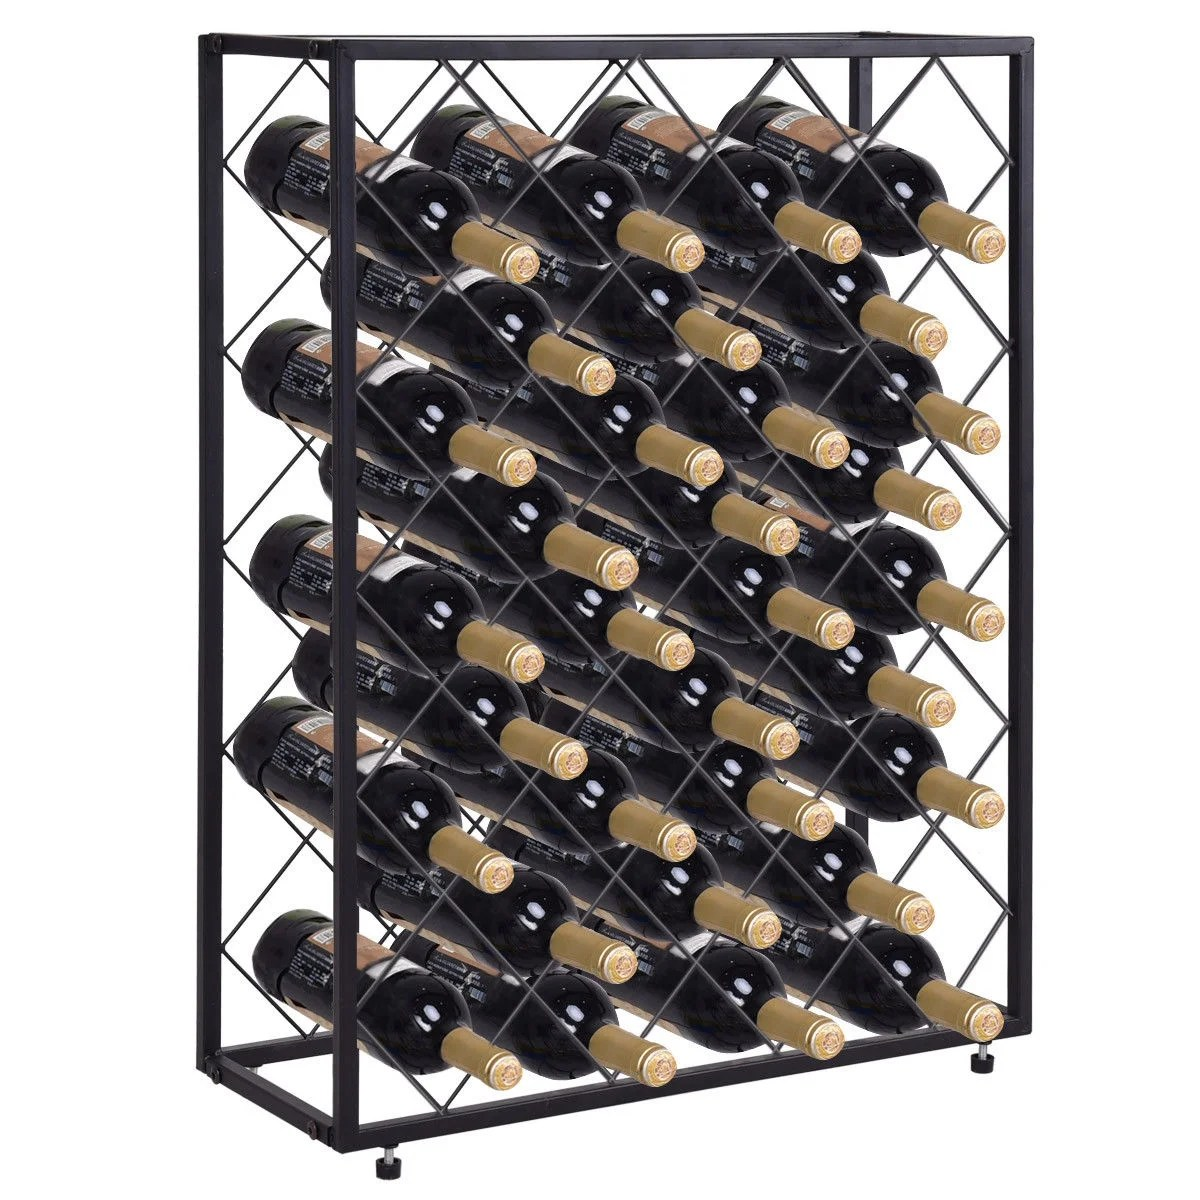 Metal Wine Racks Gymax 32 Bottle Wine Rack Metal Storage Display Liquor Cabinet W Glass Table Top